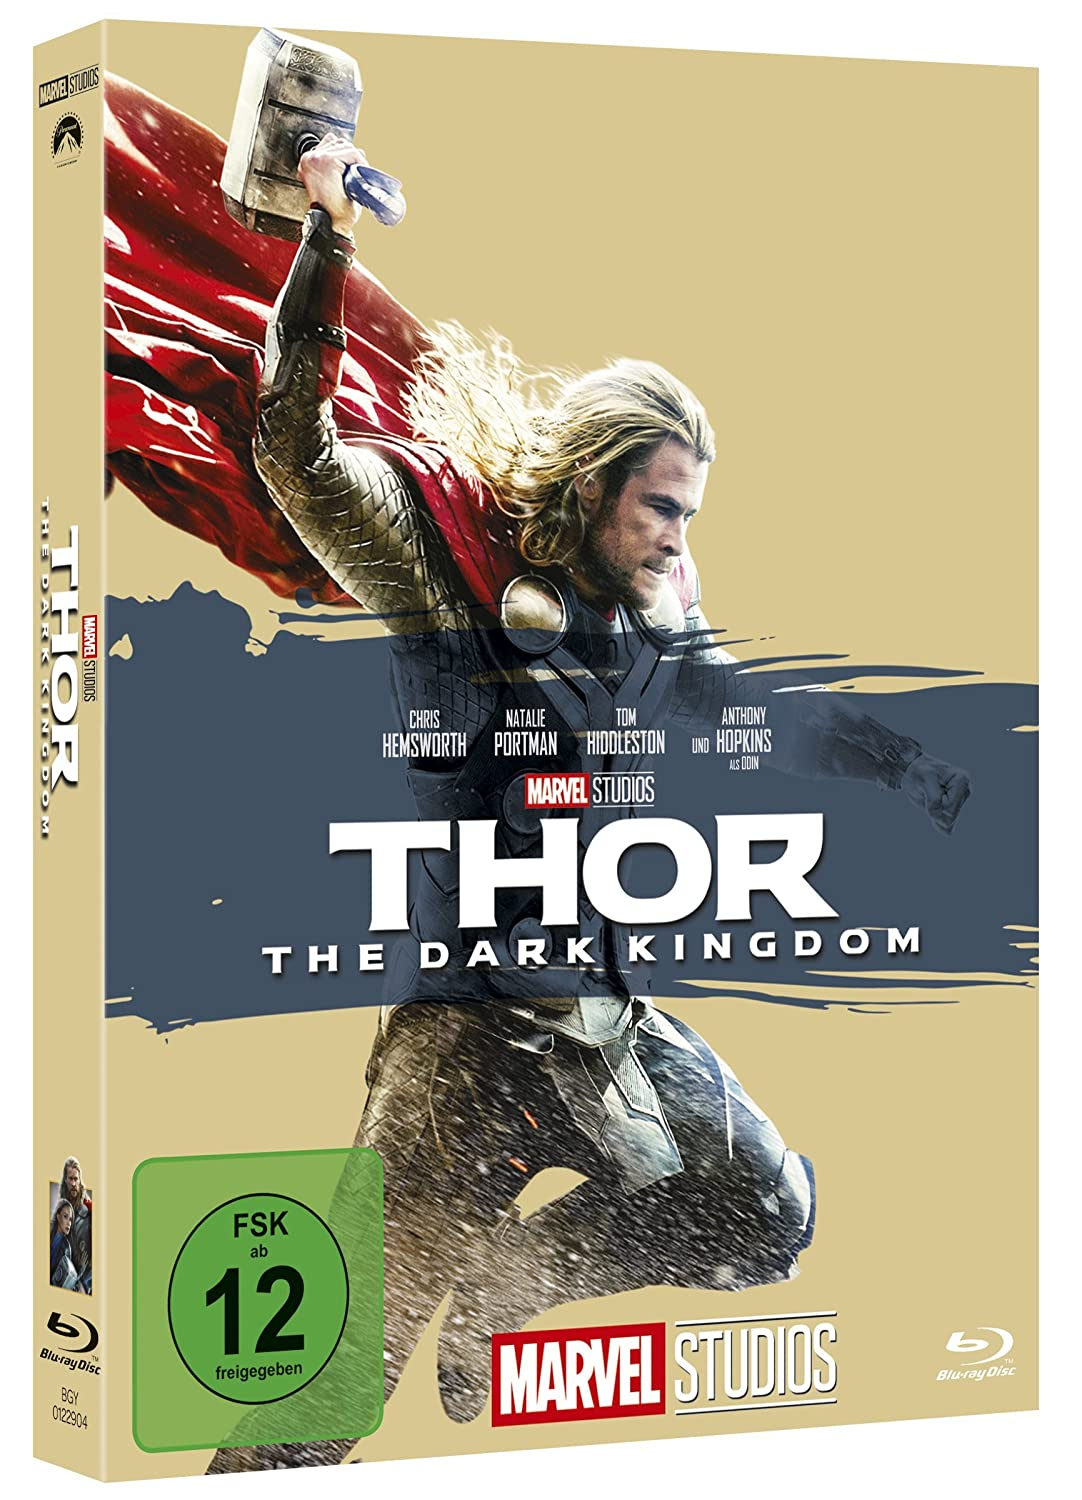 Thor The Dark Kingdom Blu R Blu Ray Chris Hemsworth Natalie Portman Tom Hiddleston Stellan Skarsgård Idris Elba Christopher Eccleston Adewale Akinnuoye Agbaje Kat Dennings Ray Stevenson Anthony Hopkins Jaimie Alexander